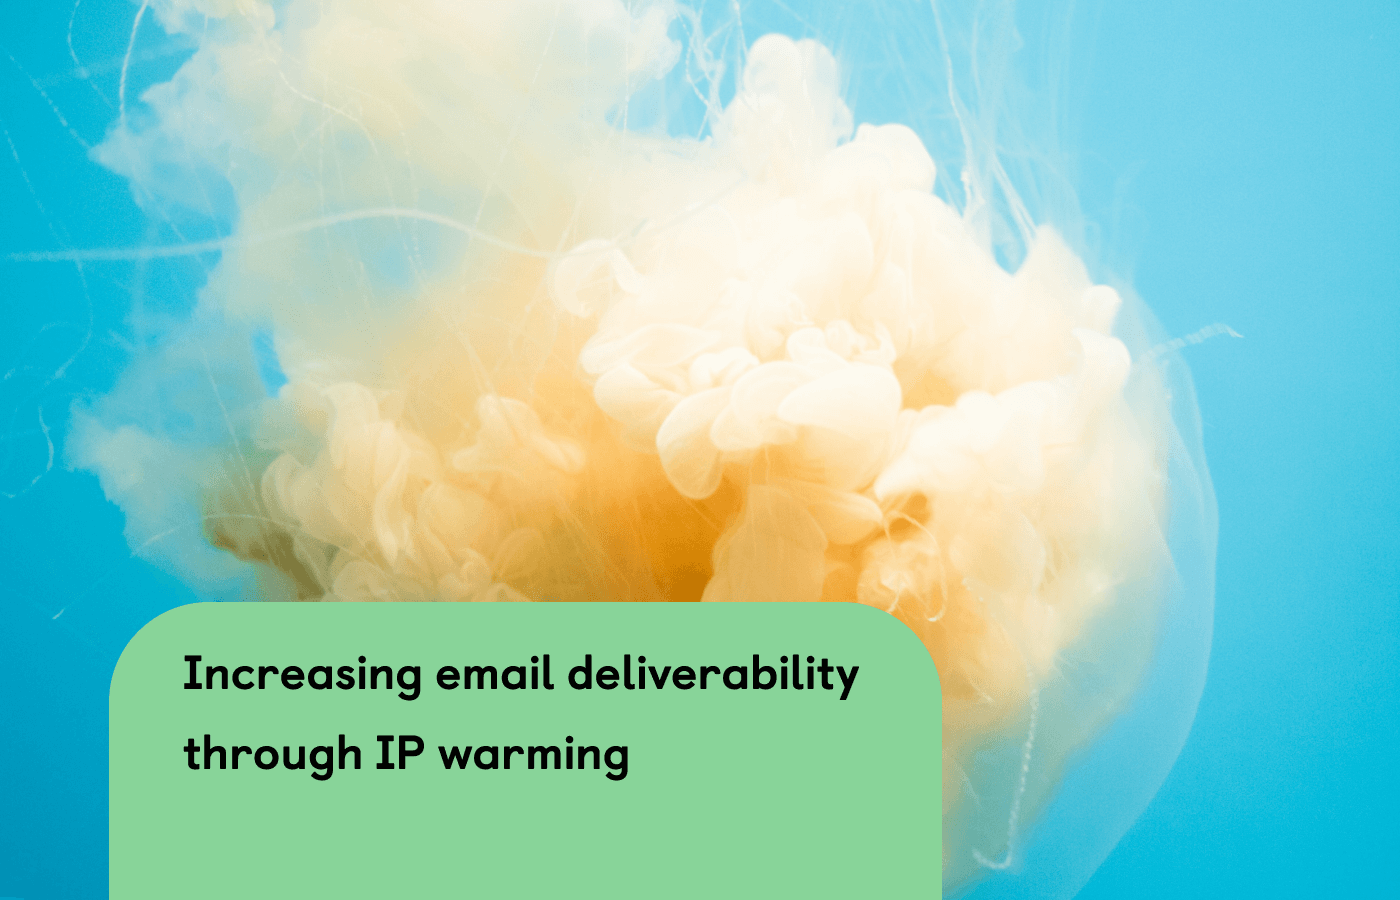 How to increase email deliverability through IP warming